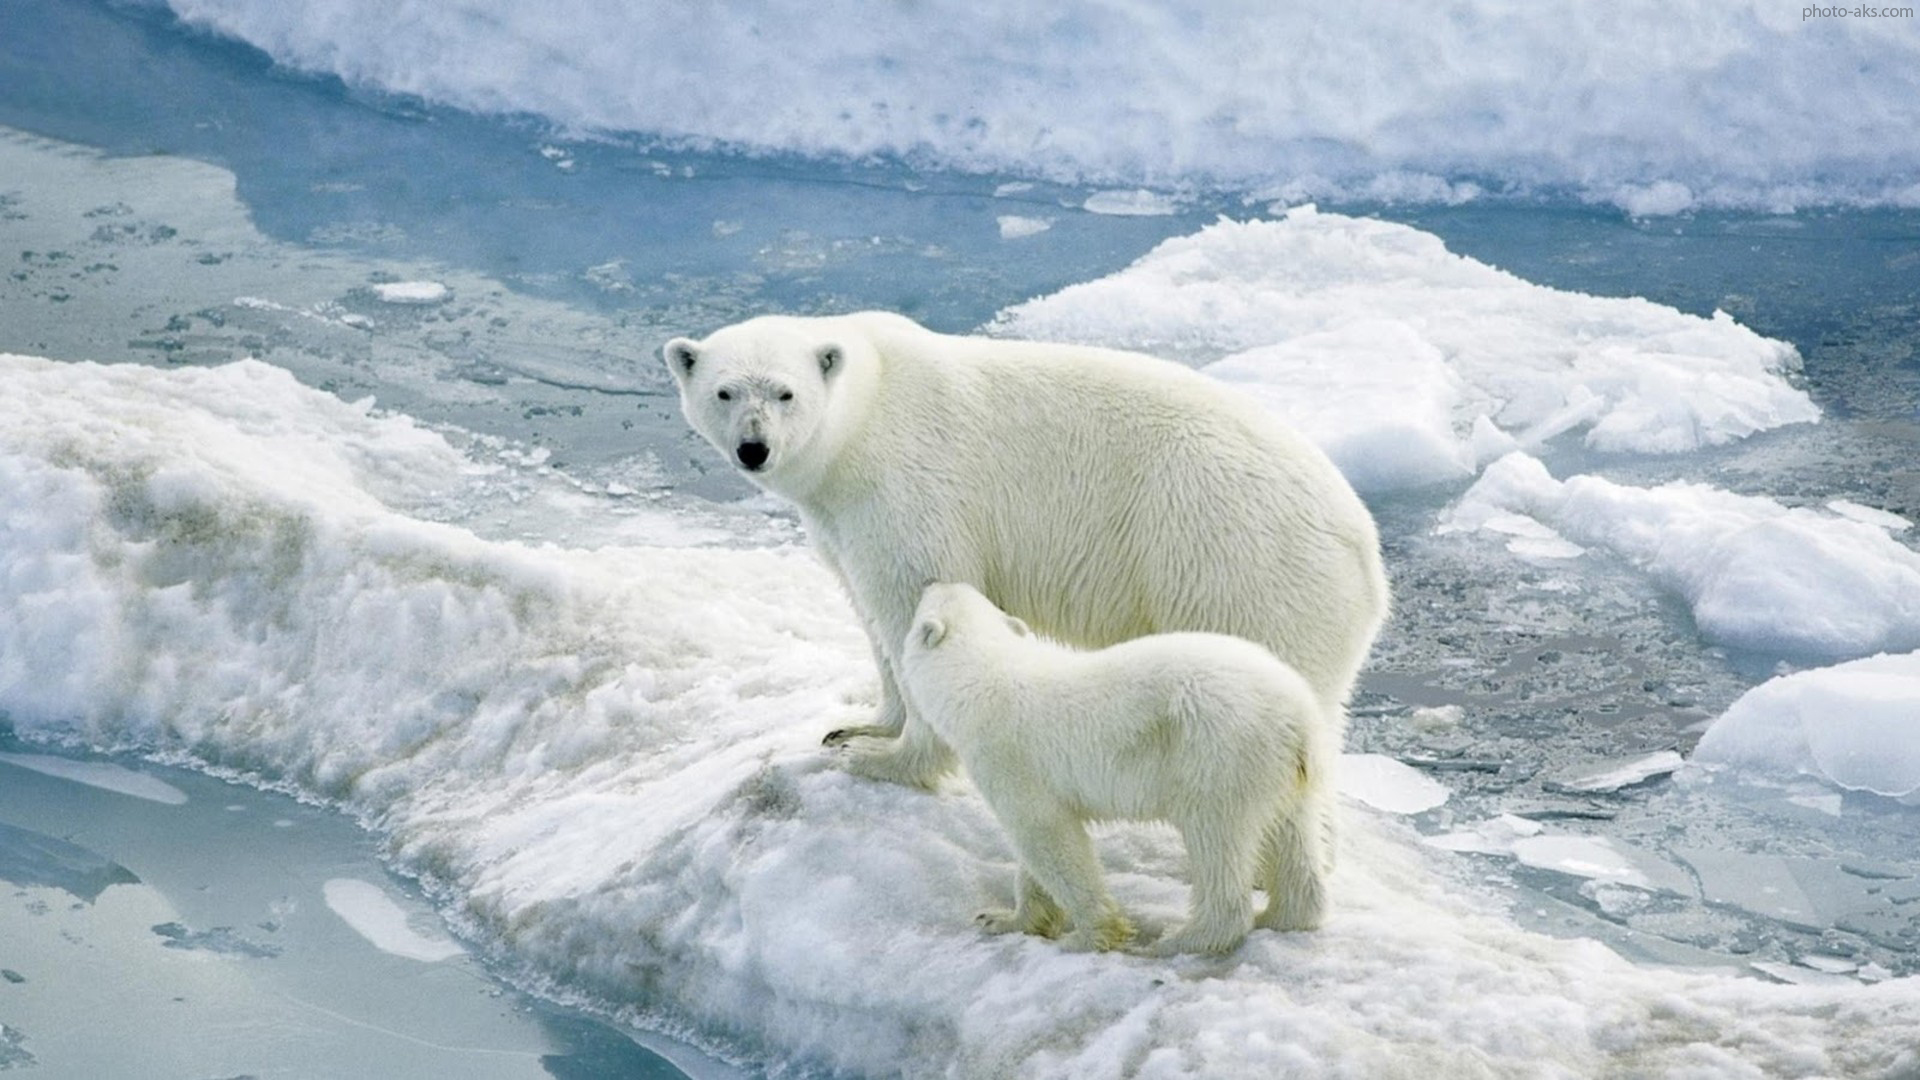 Ice Snow Animals Polar Bears Baby Animals 2560x1440 Wallpaper Download